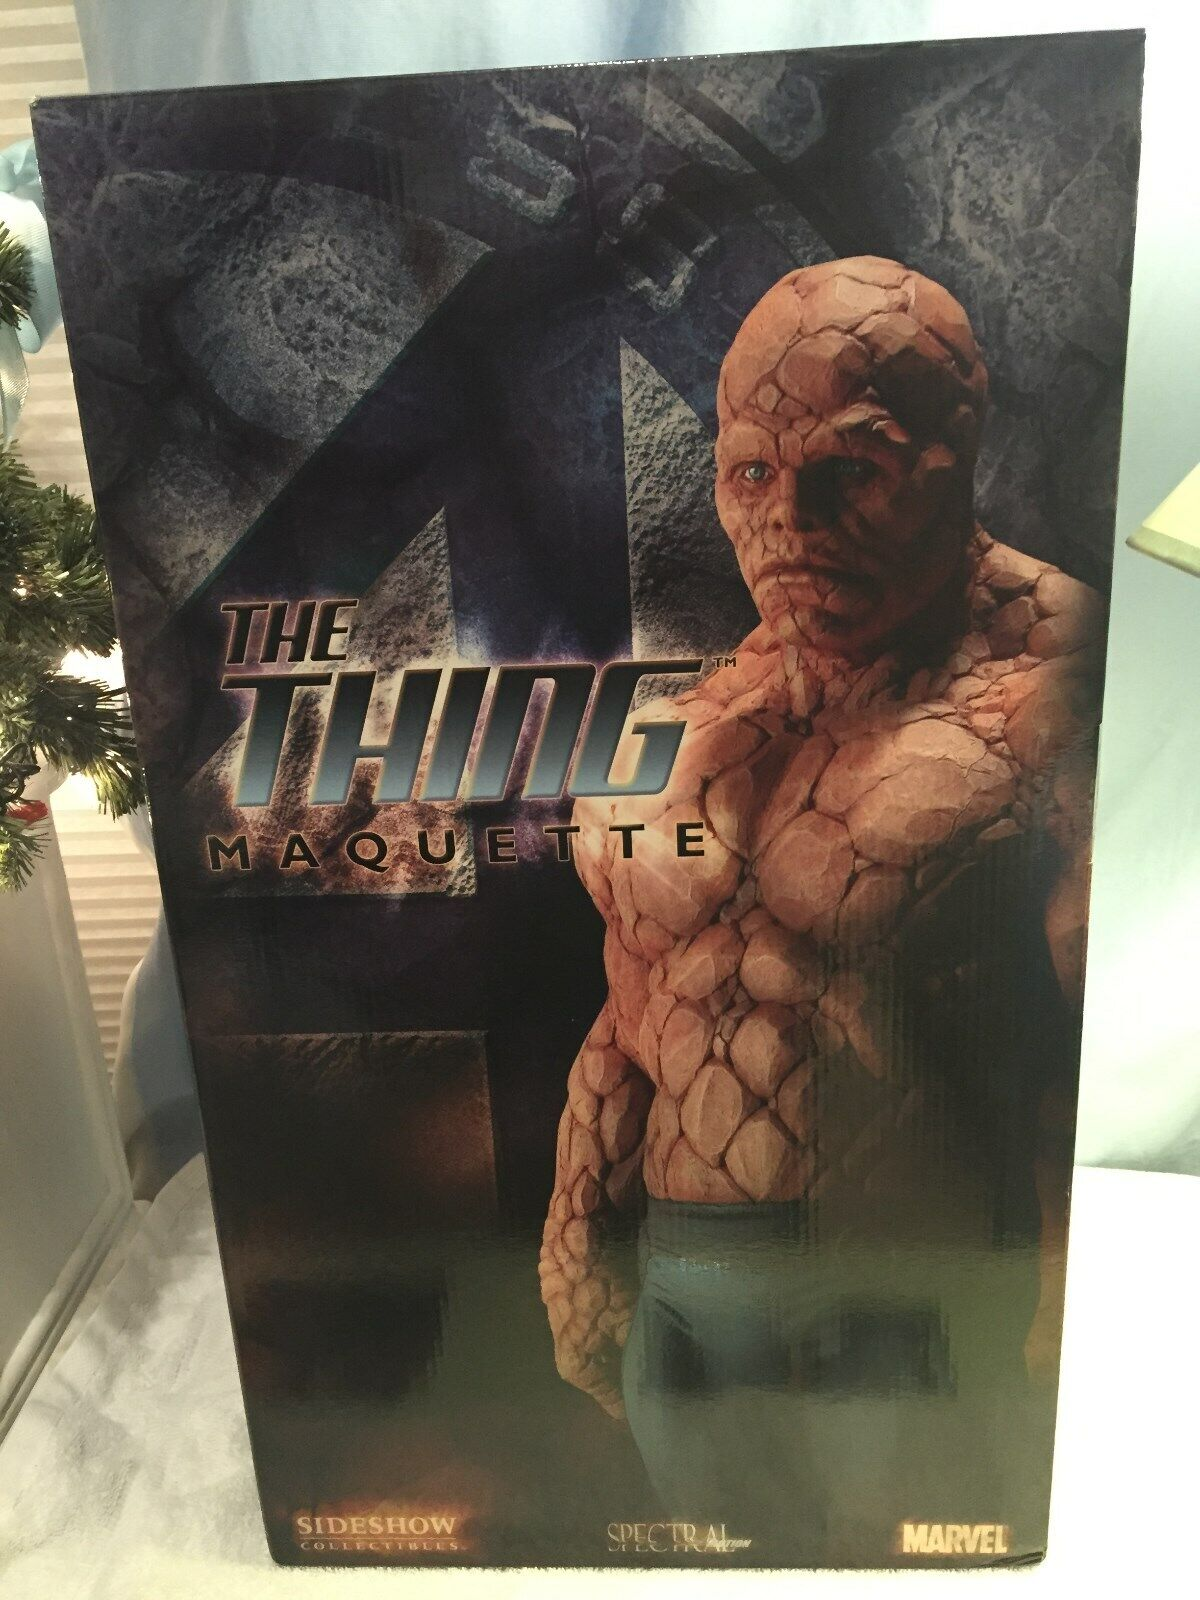 SIDESHOW MARVEL FANTASTIC FOUR THE THING 1 4 SCALE MAQUETTE STATUE FIGURE BUST